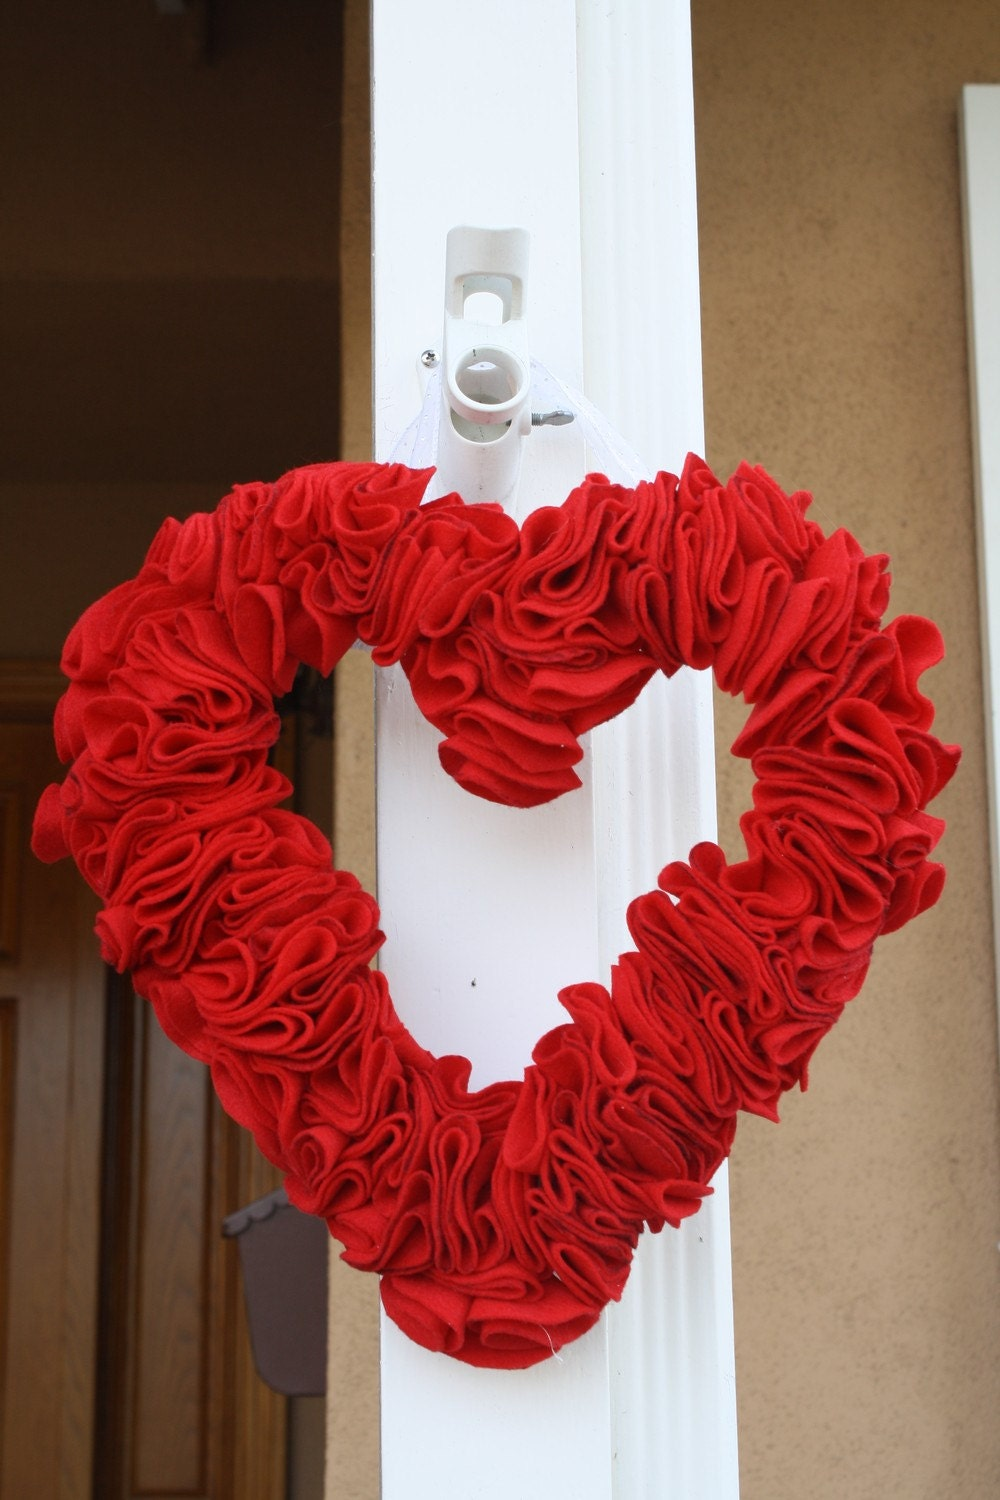 Wreath home decor valentine 39 s red heart felt door by for Hearts decorations home